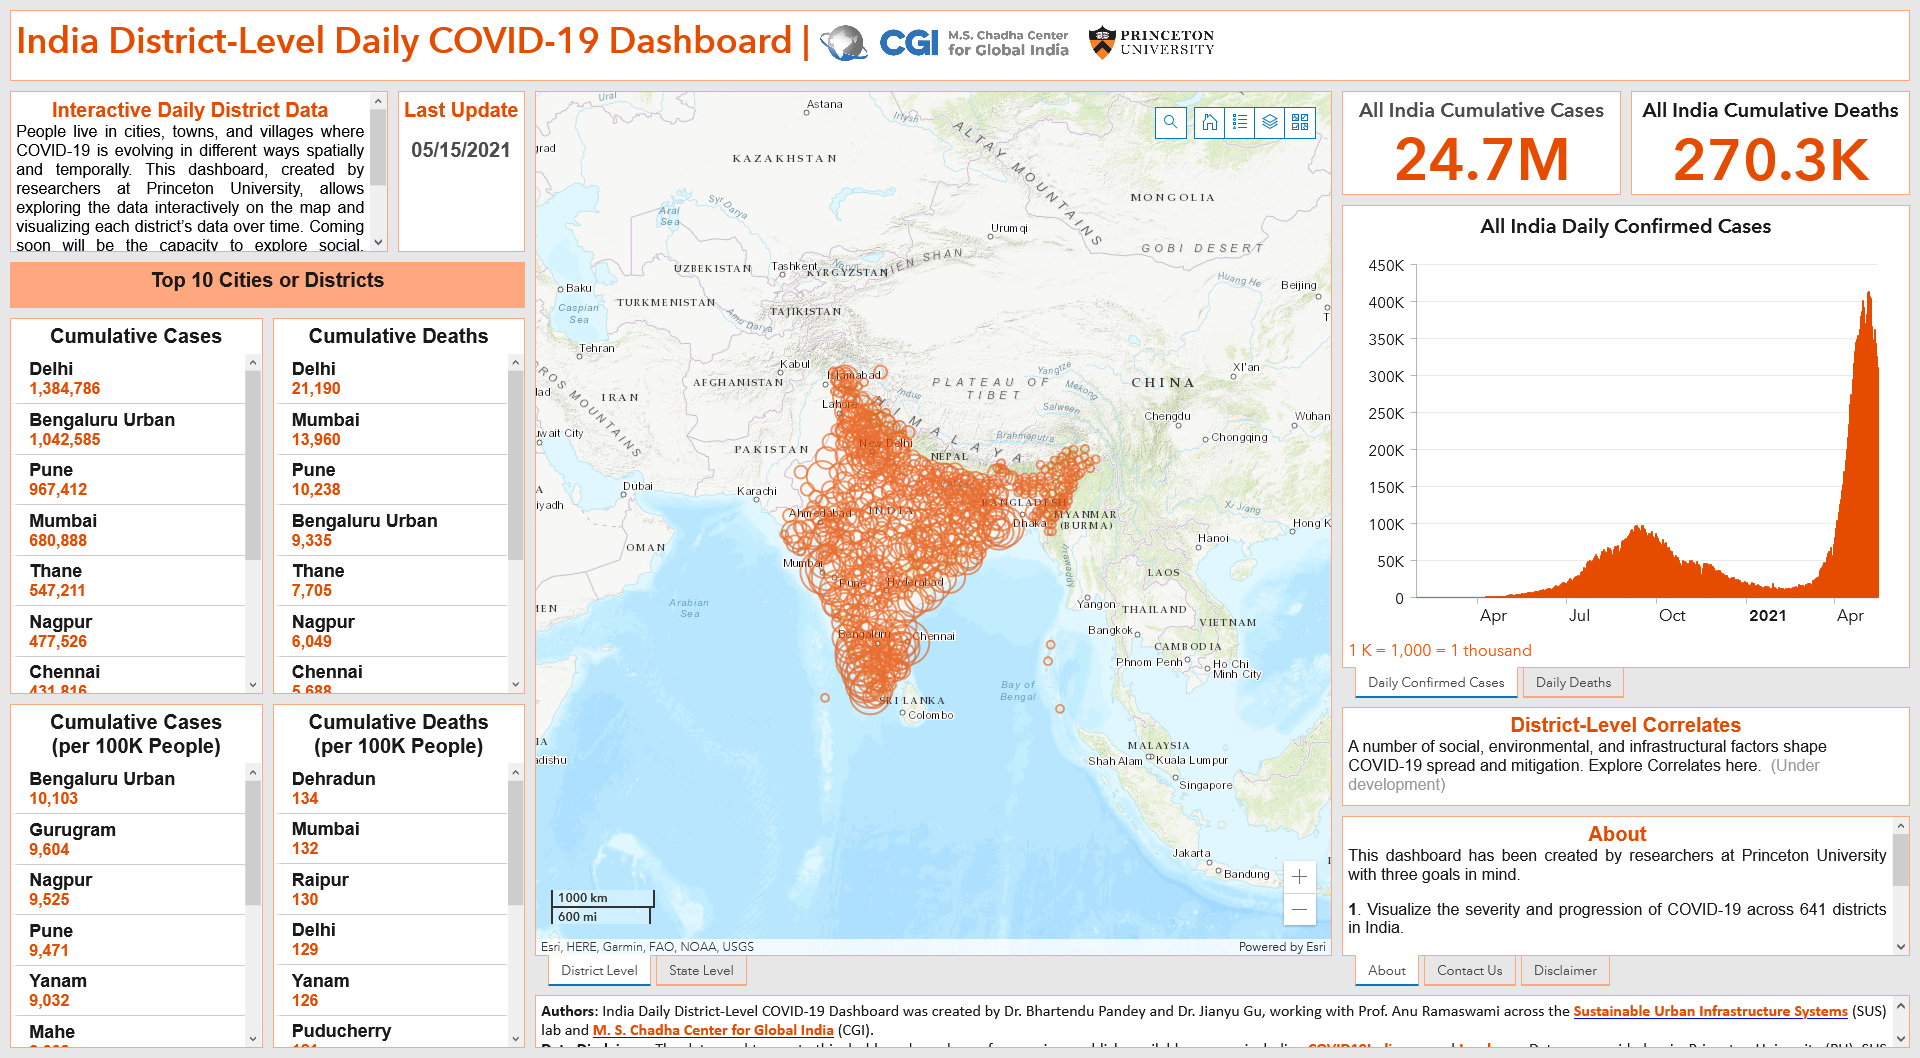 An interactive dashboard, created by researchers at Princeton University, displays daily district-level data on the spread of COVID-19 across India. The interface lets users explore and visualize the daily infection and mortality rates and compare such data across villages, towns and cities.